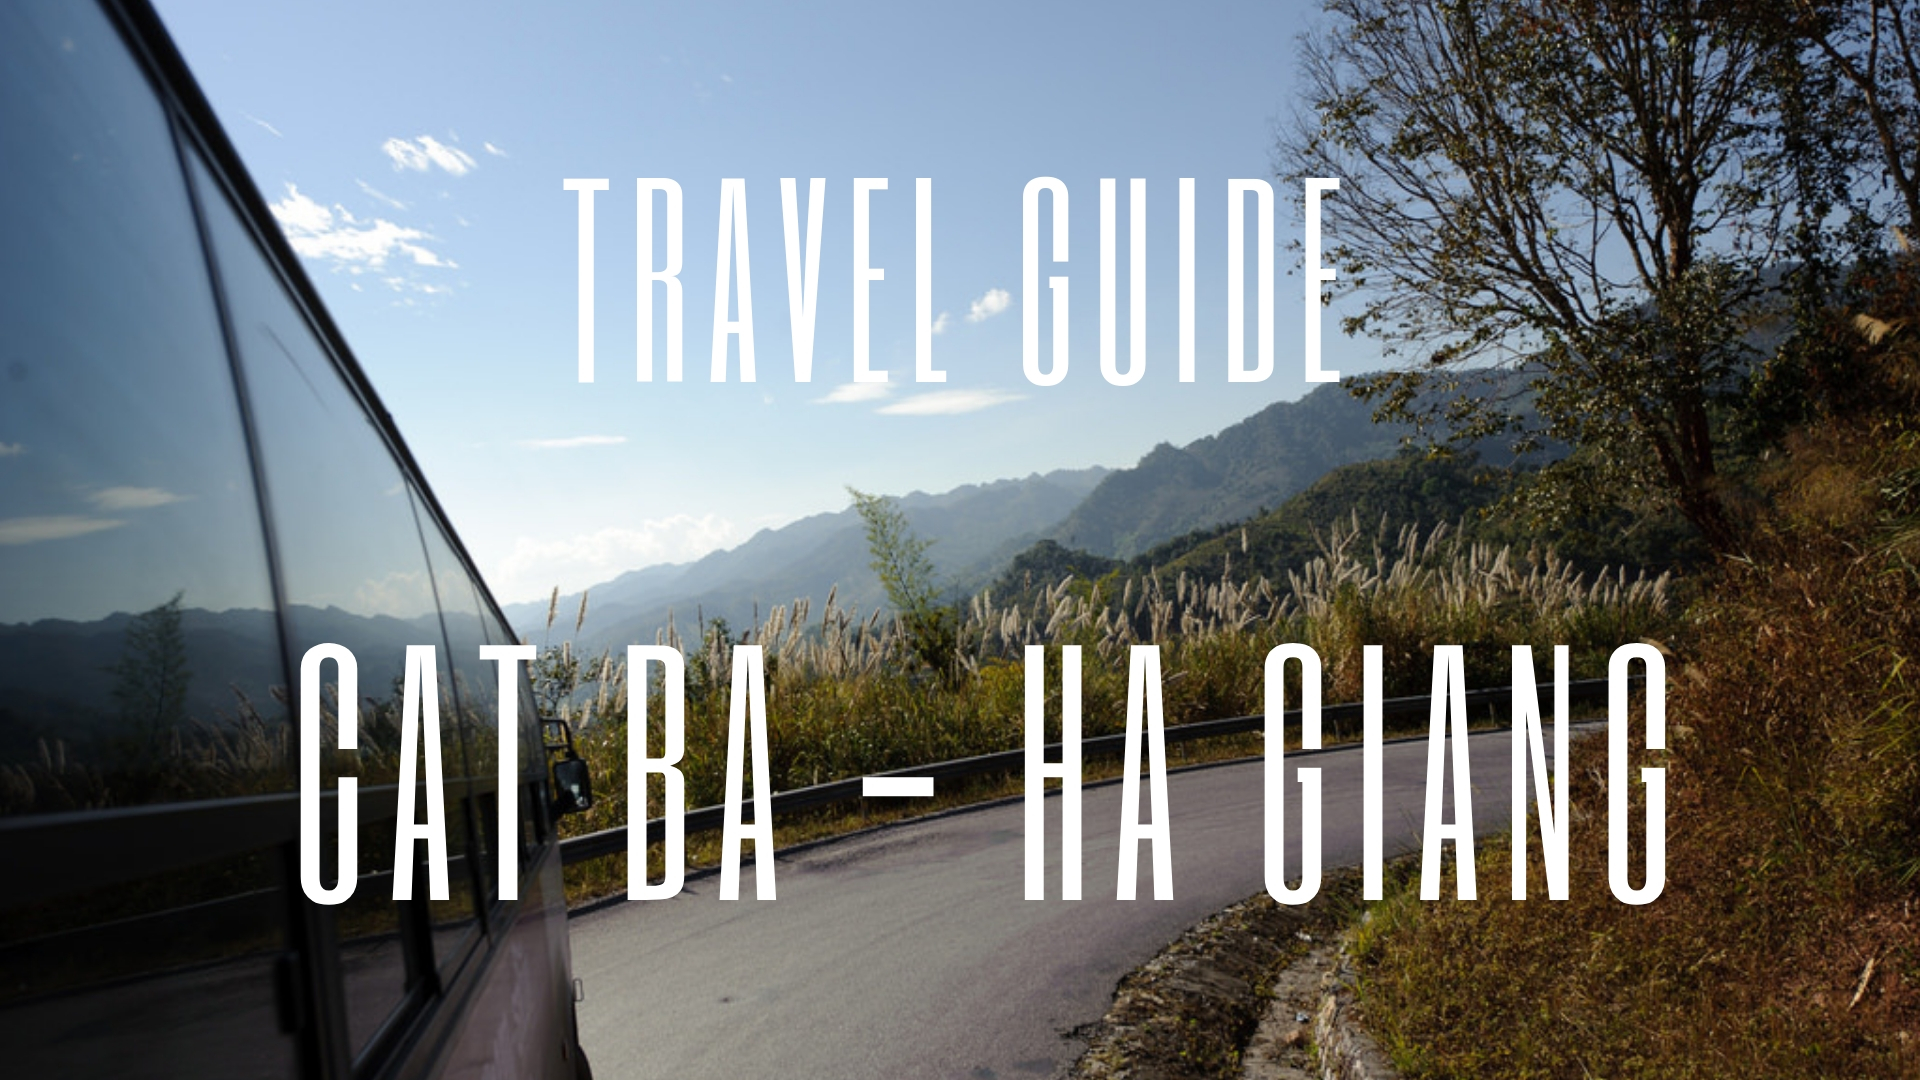 How to get to Ha Giang from Cat Ba